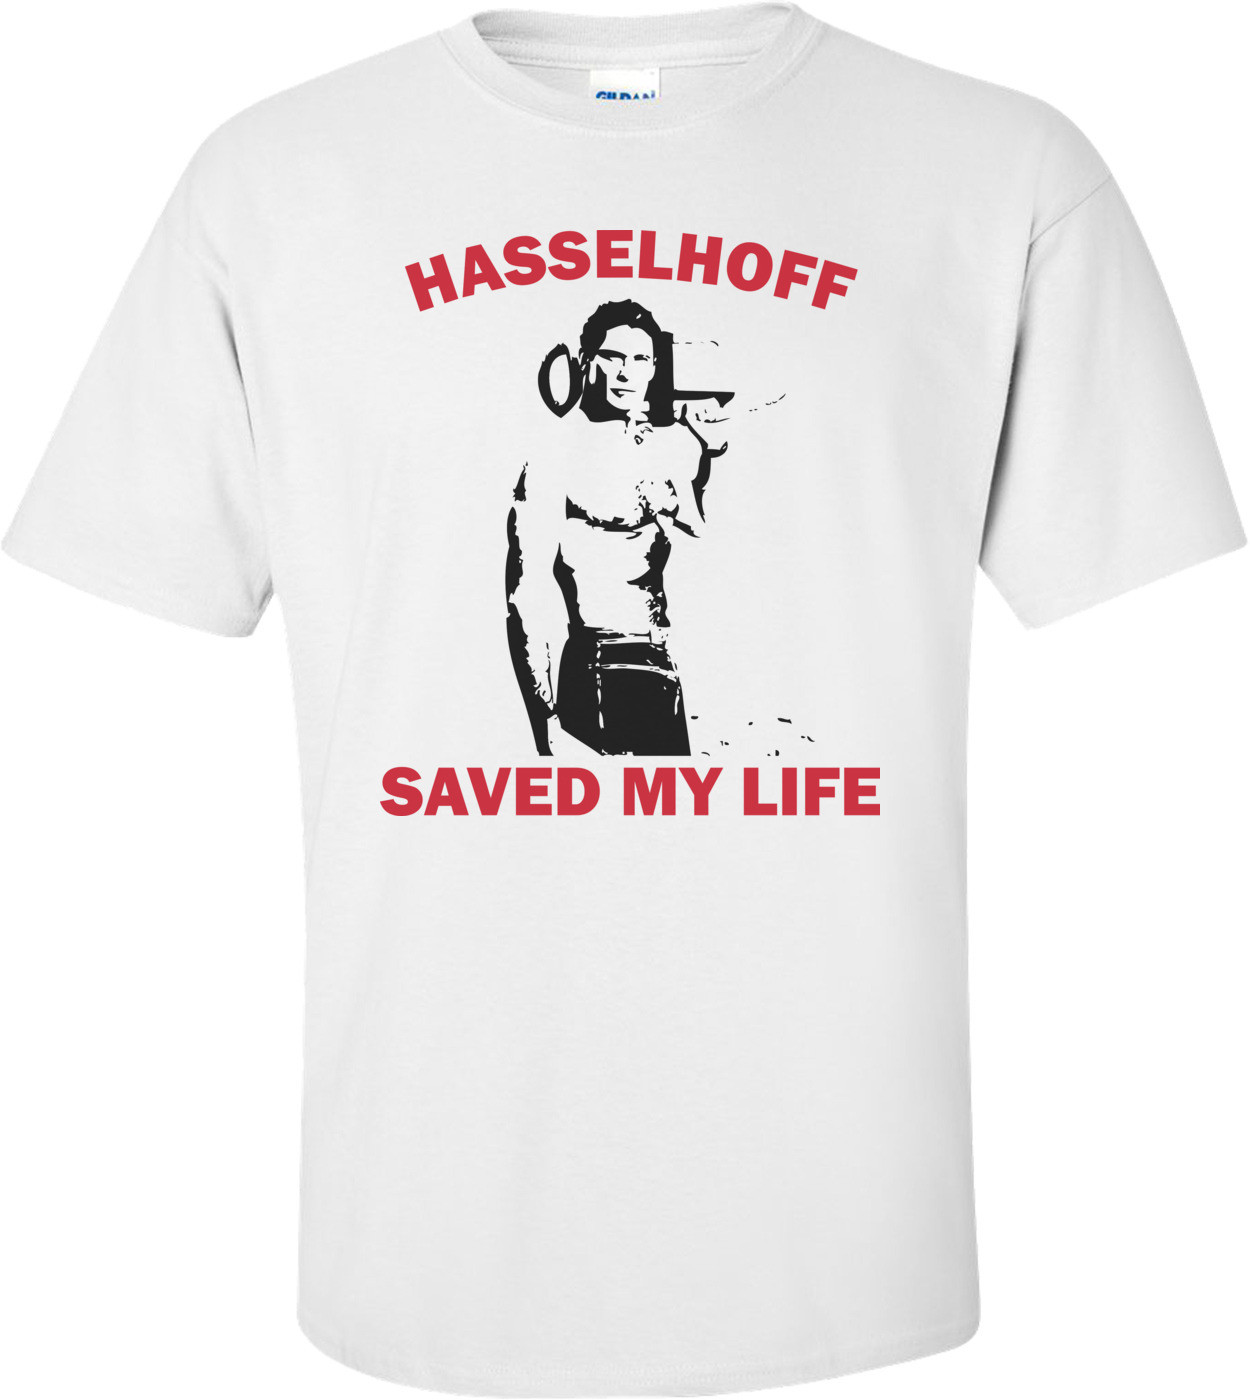 Hasselhoff Saved My Life